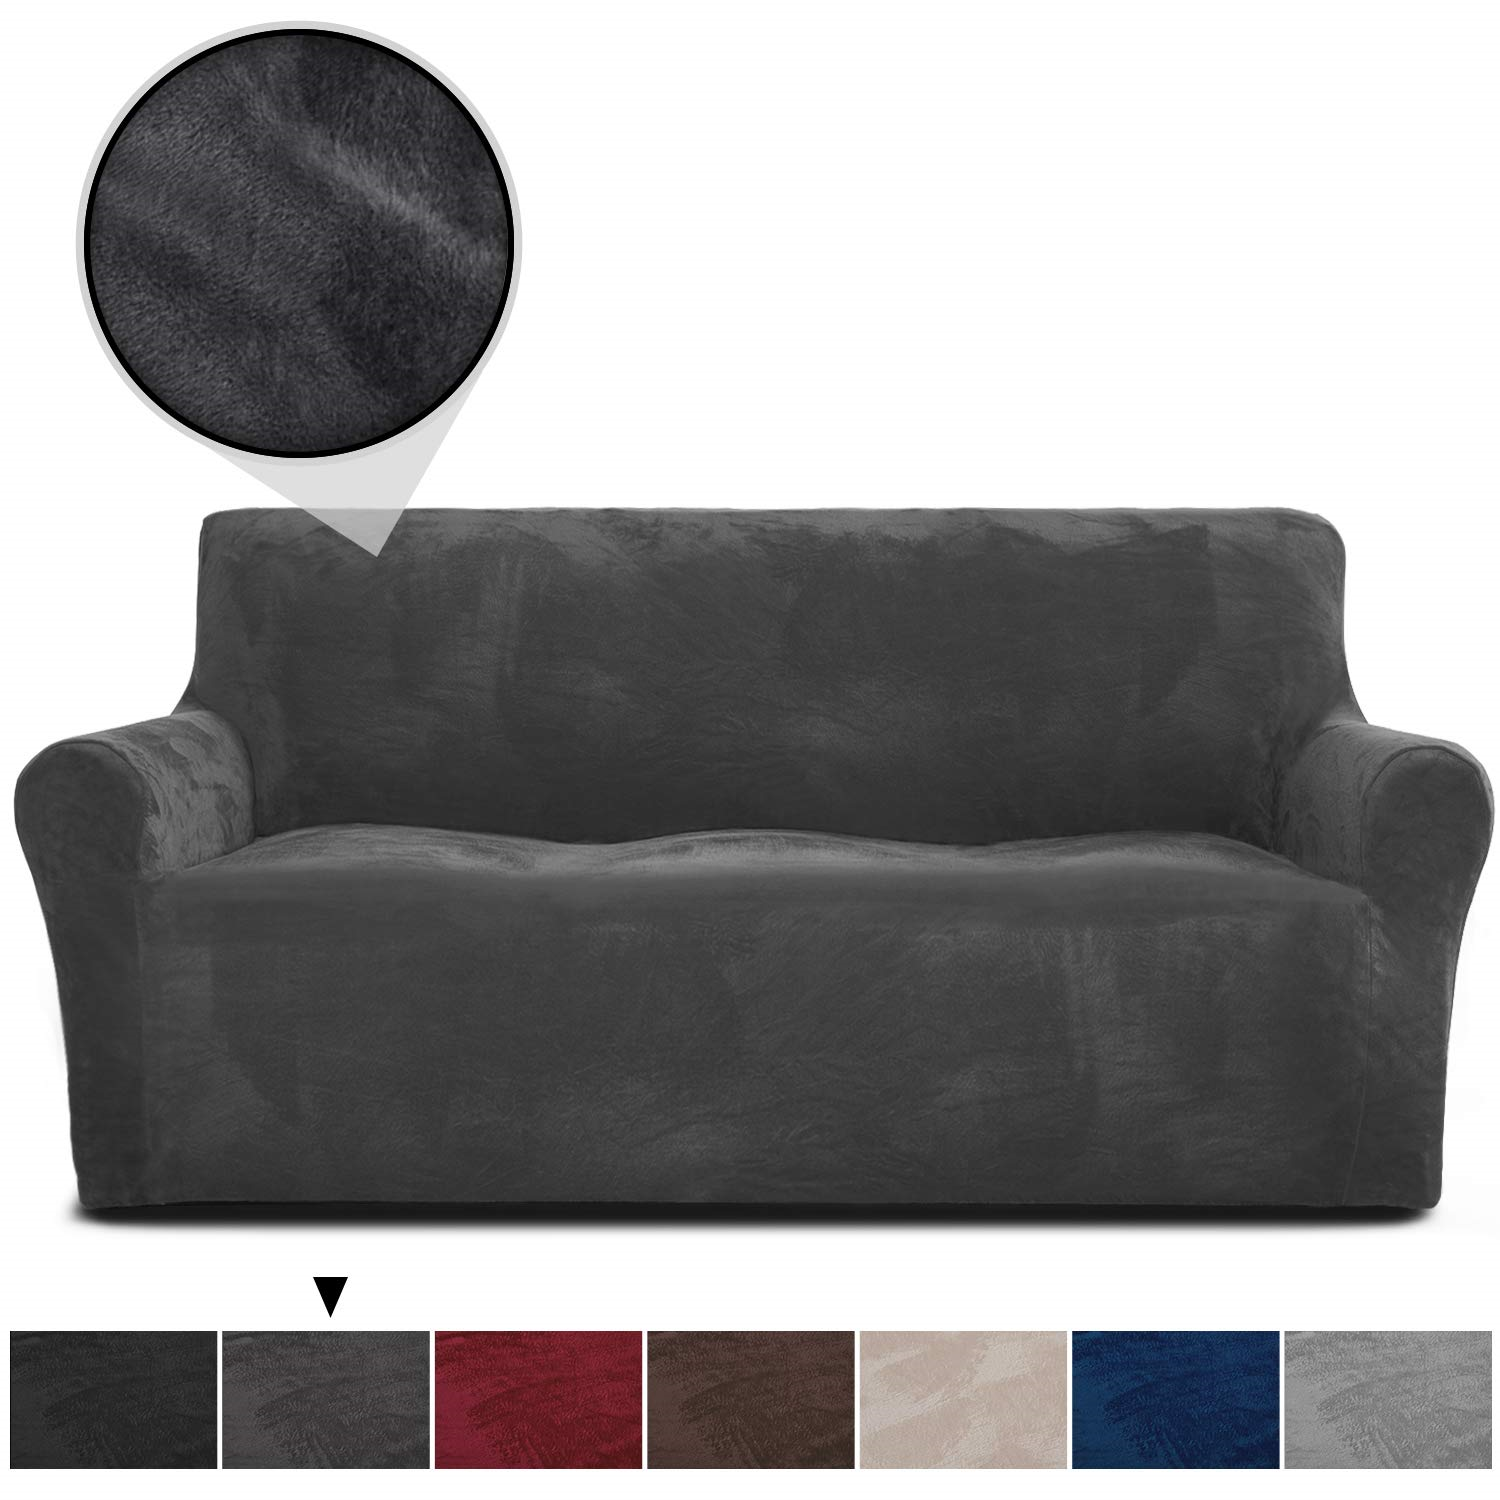 Rhf Velvet Sofa Slipcover Stretch Couch Covers For 3 Cushion Couch Couch Covers Kitchen Sofa Ideas Of Kitch Slip Covers Couch Couch Covers Slipcovered Sofa